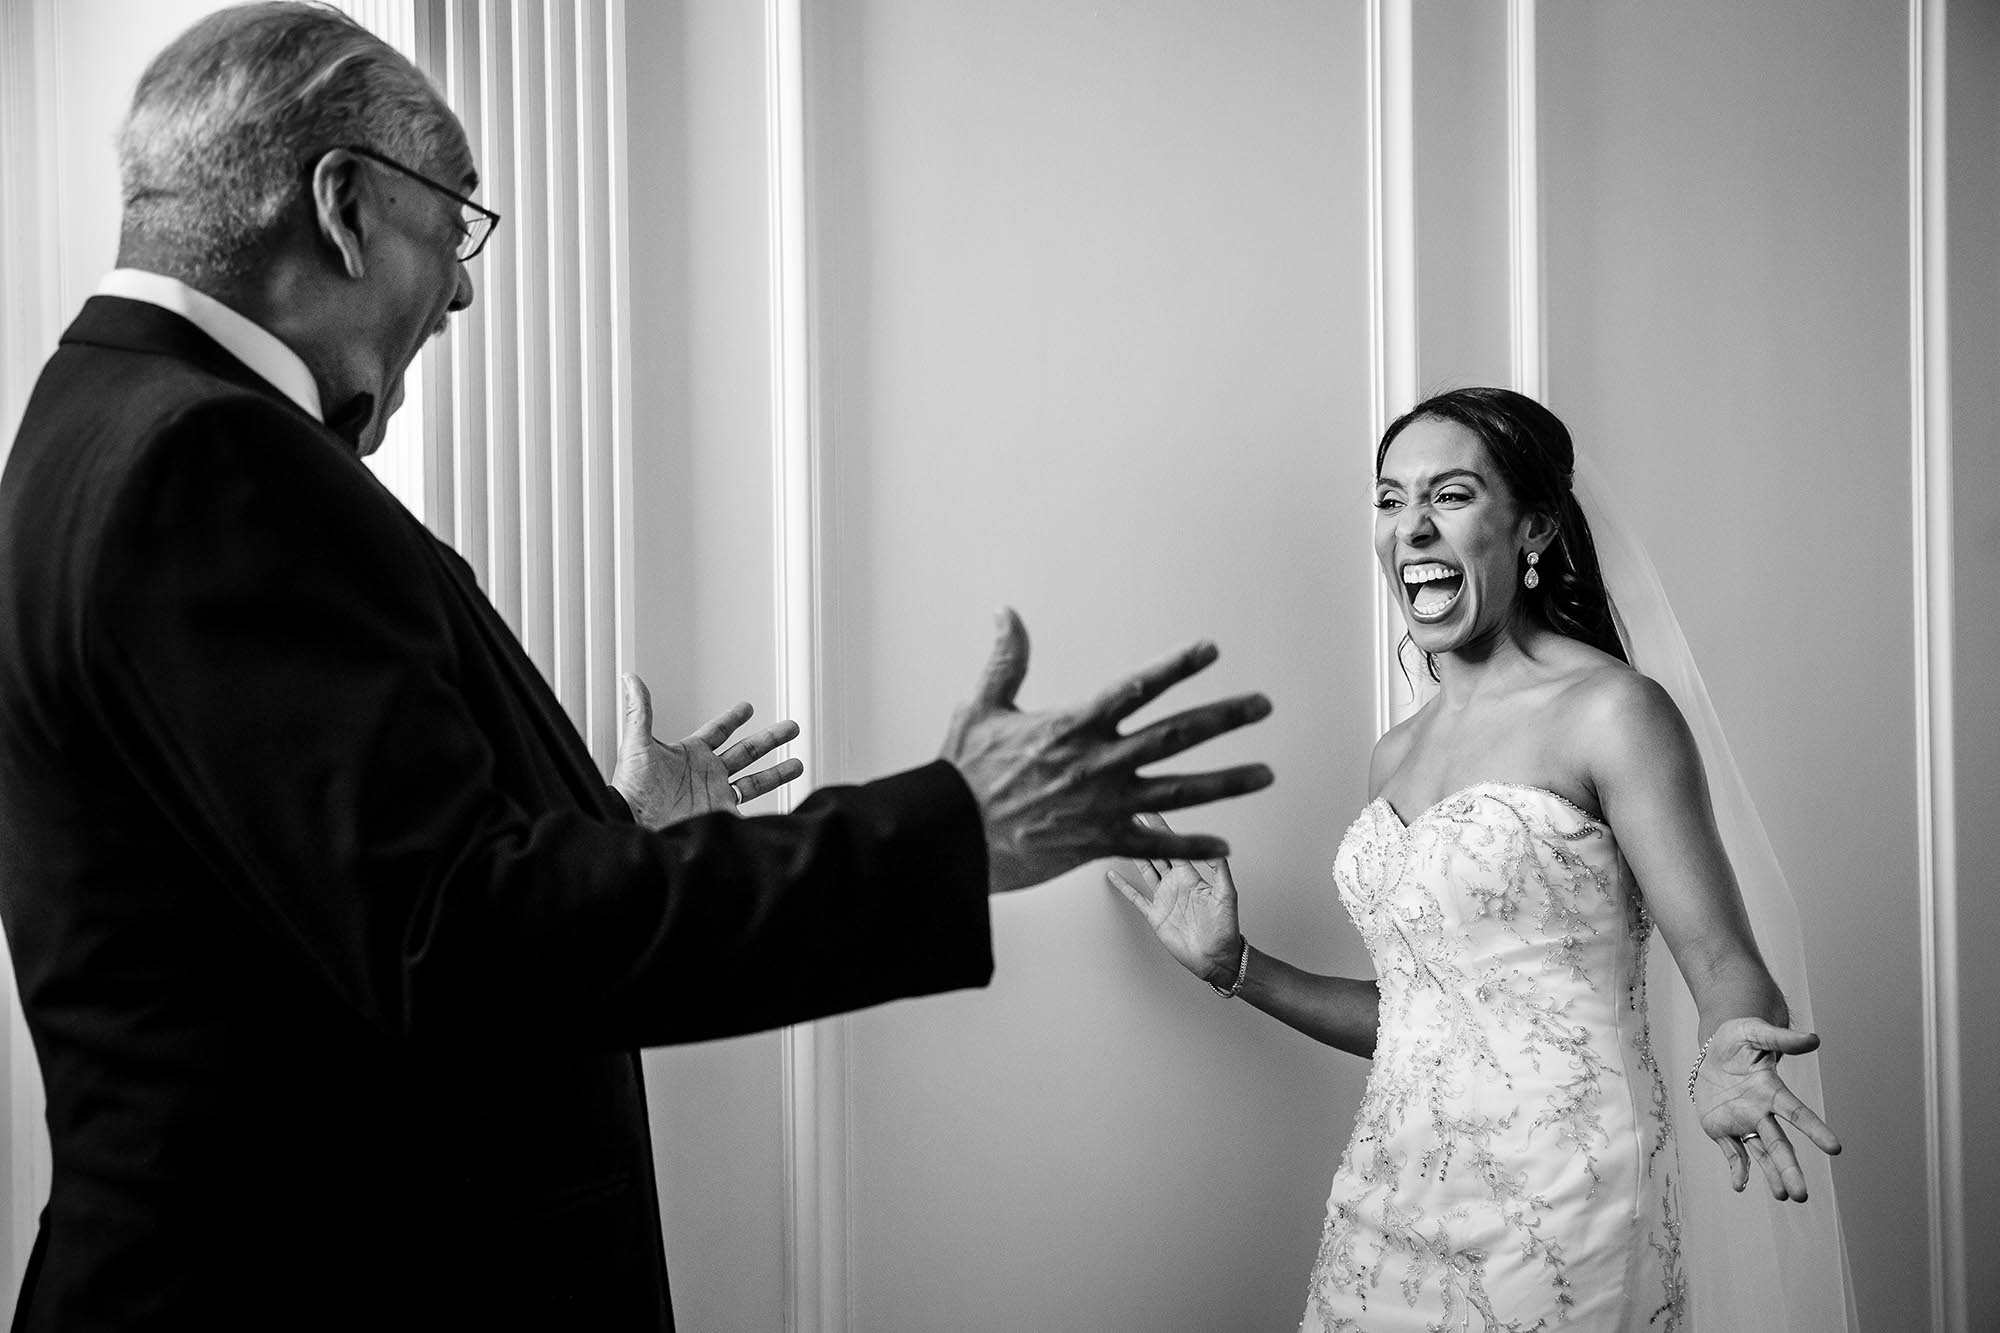 Monique's father sees her in her wedding dress for the very first time on her wedding day just moments before he walks her down the aisle at St. Dominic's Catholic Church in Shaker Heights, Ohio.